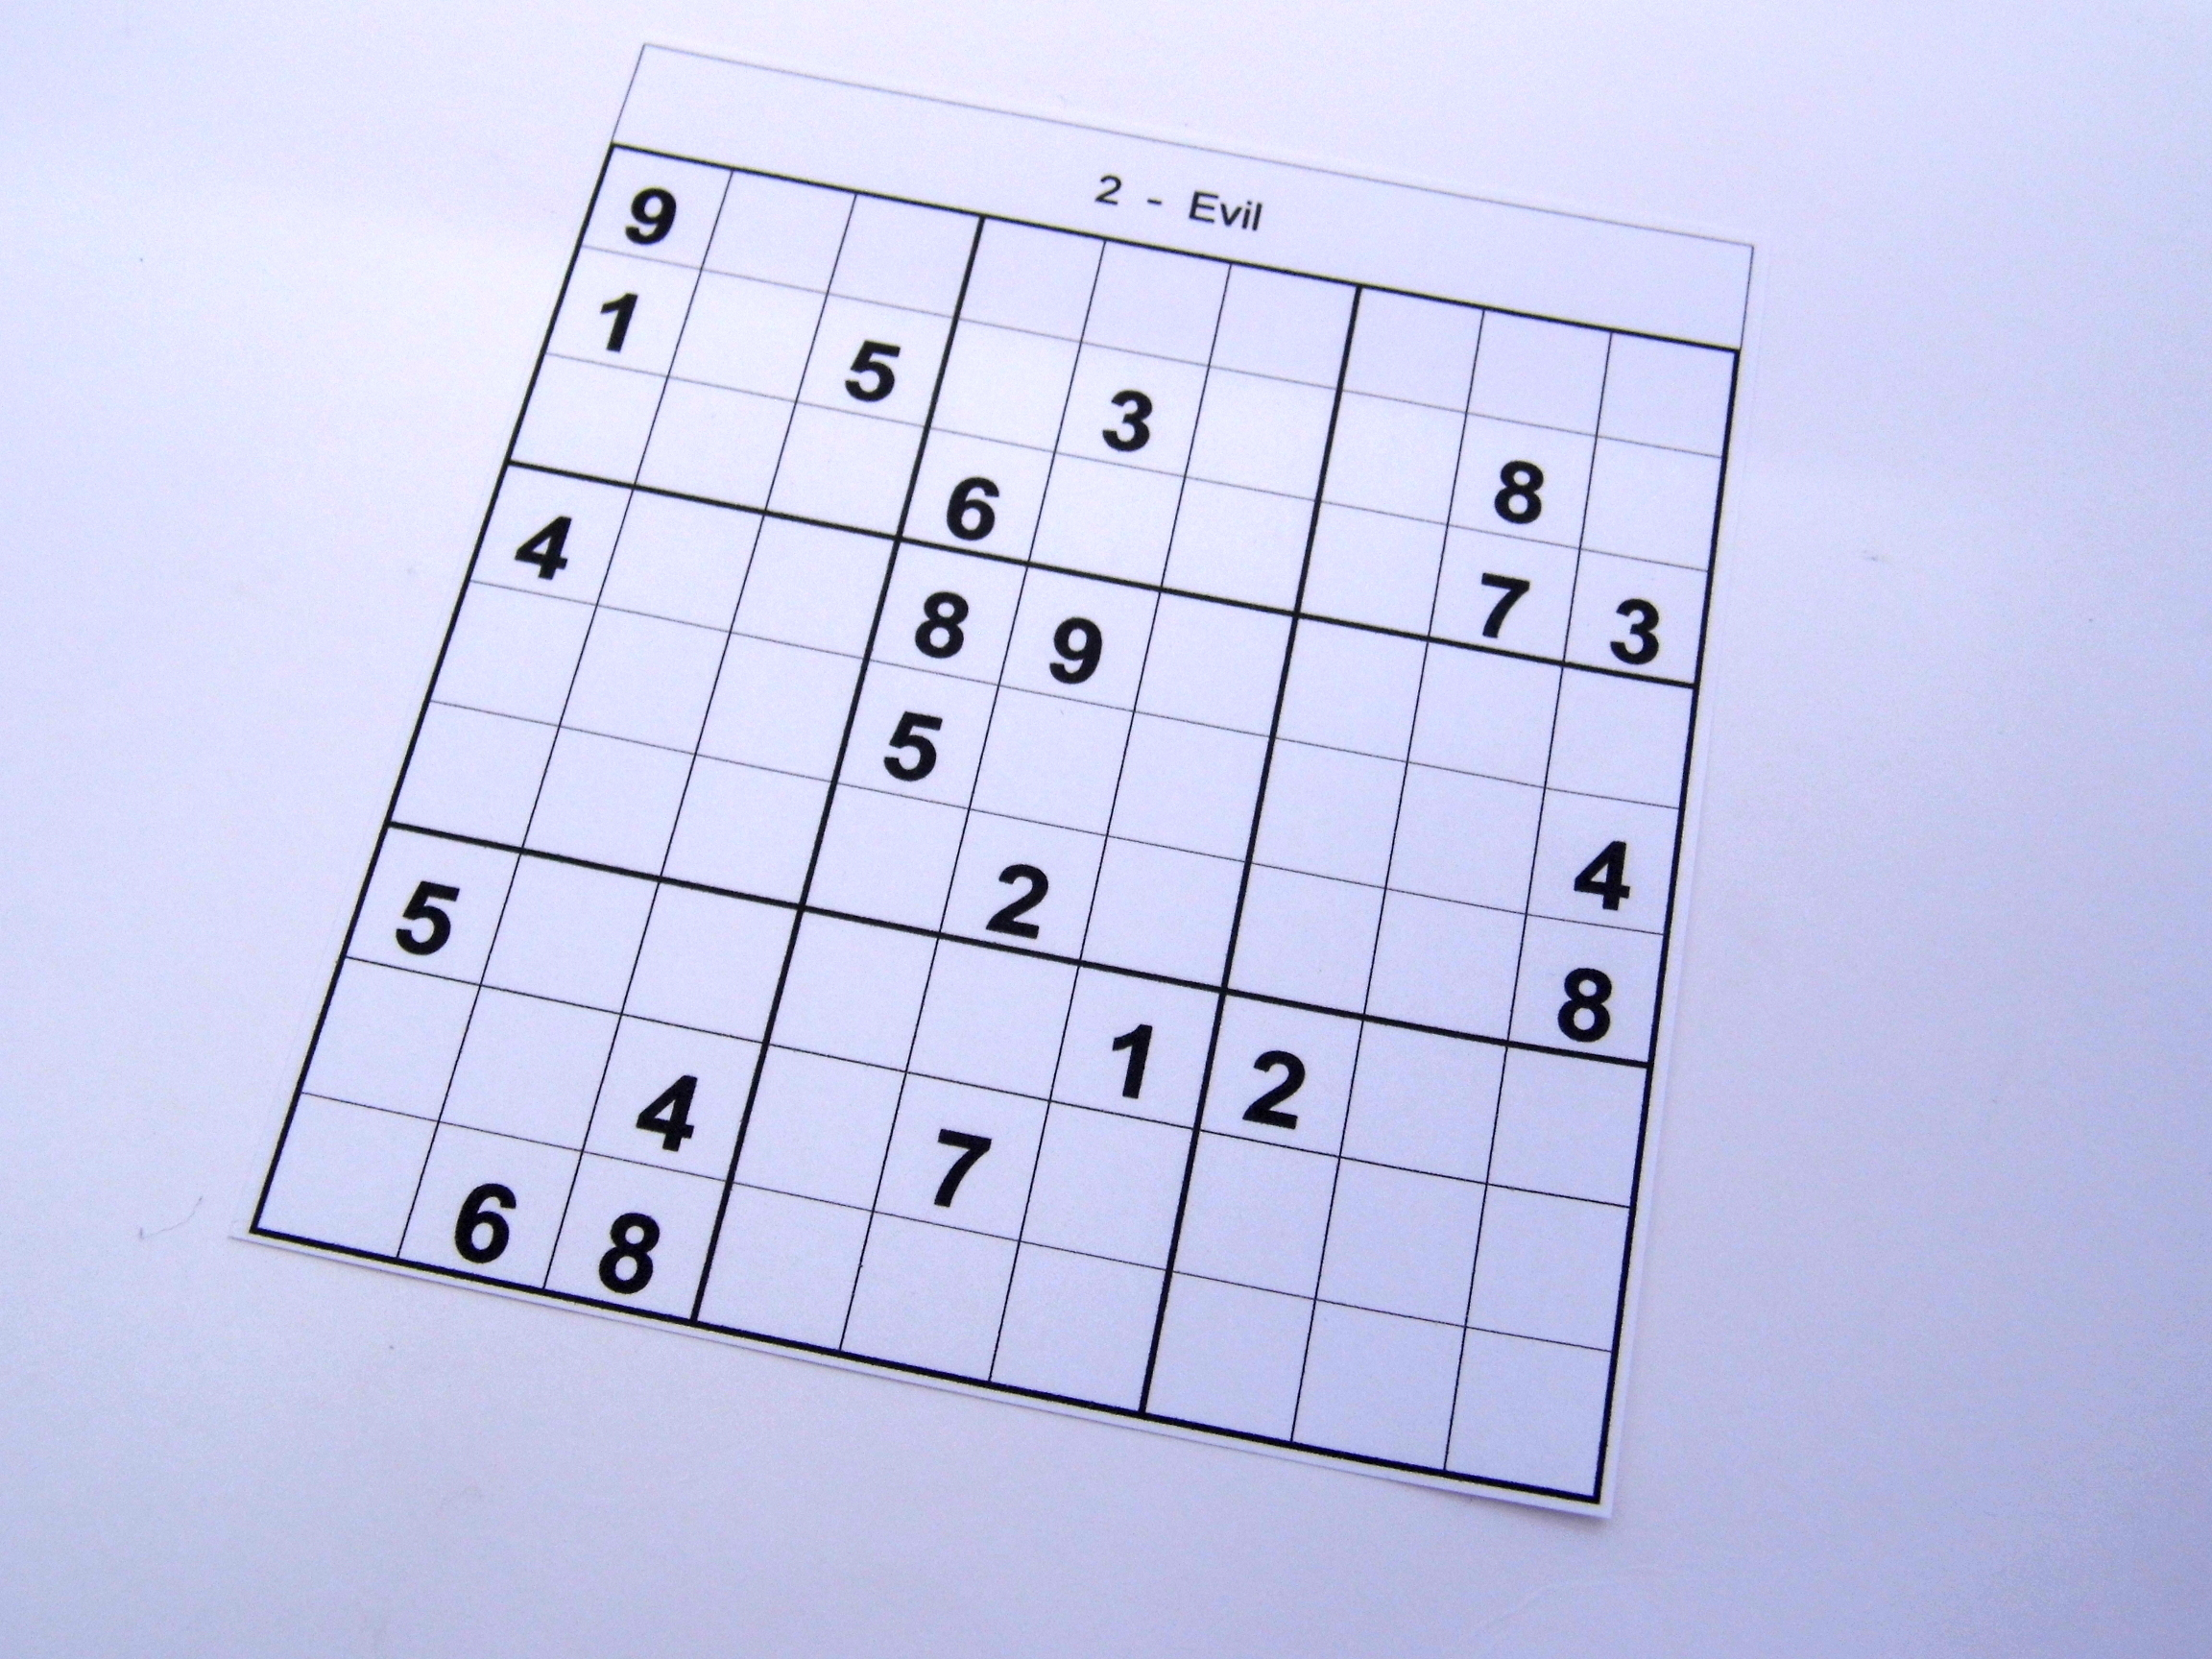 photograph relating to Printable Sudoku Puzzles Medium named Archive Puzzles 36 Medium Sudoku Puzzles Guides 1 towards 10